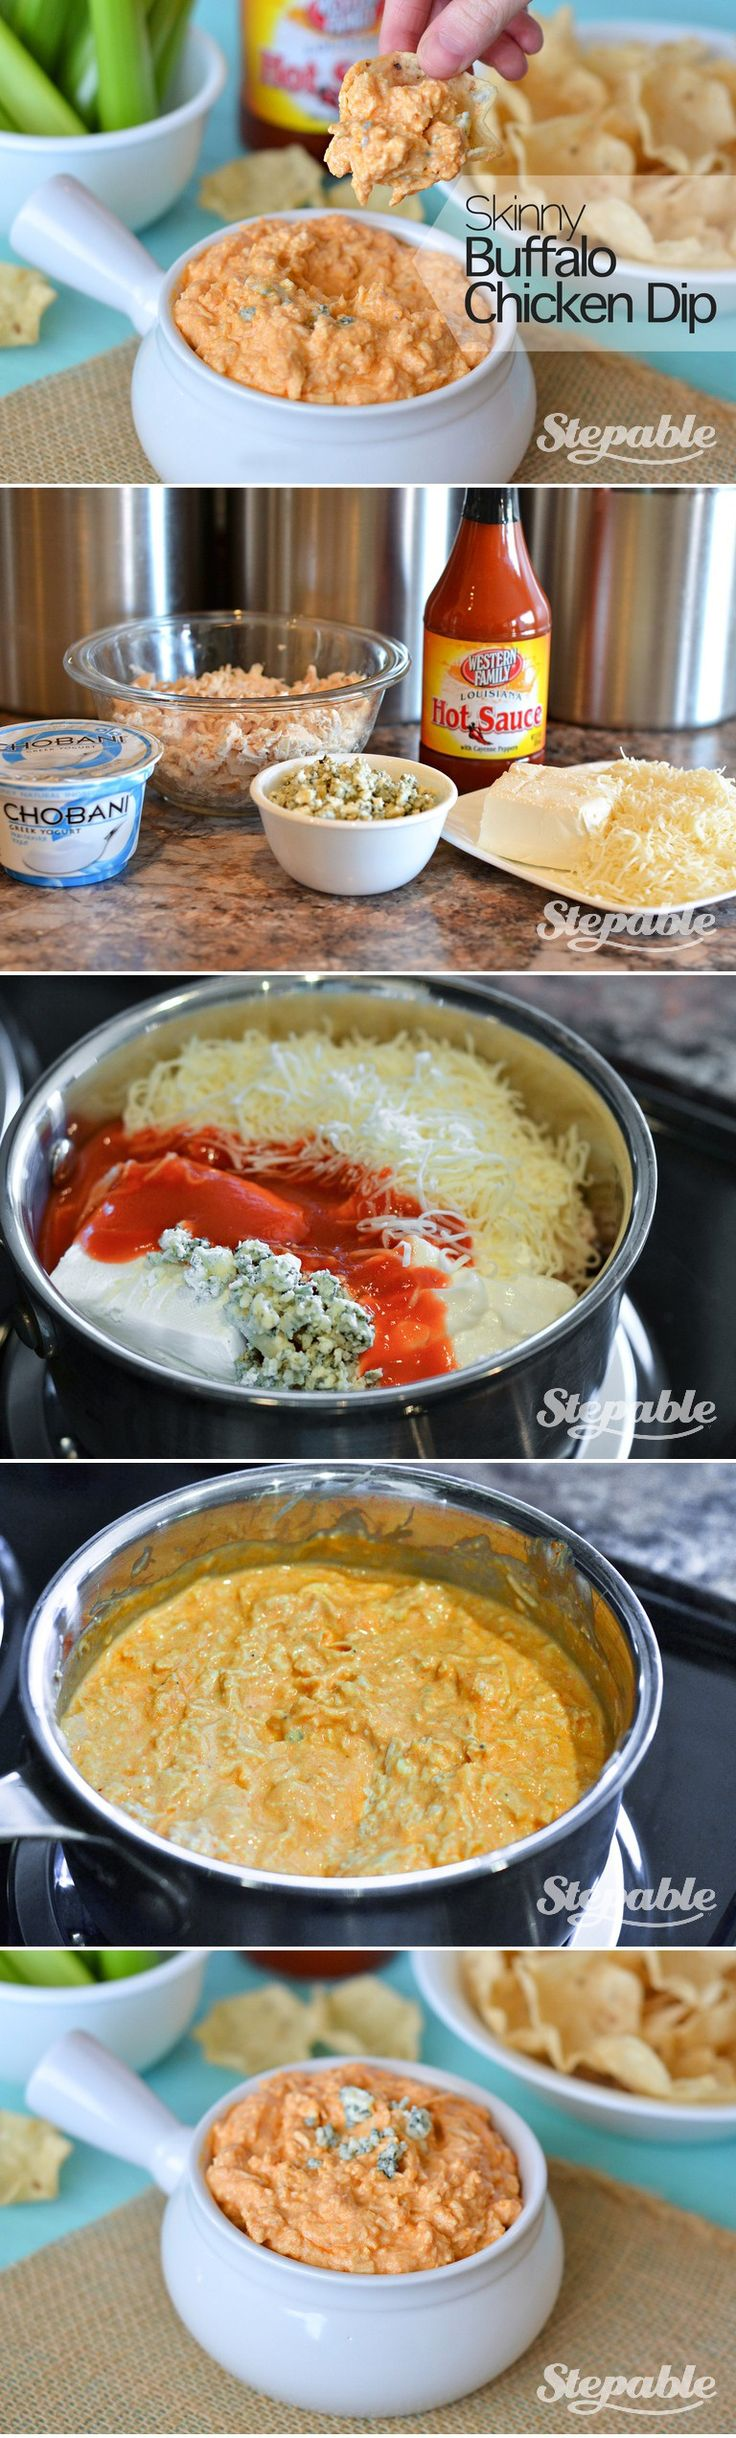 Skinny Buffalo Chicken Dip; make this alllll the time!